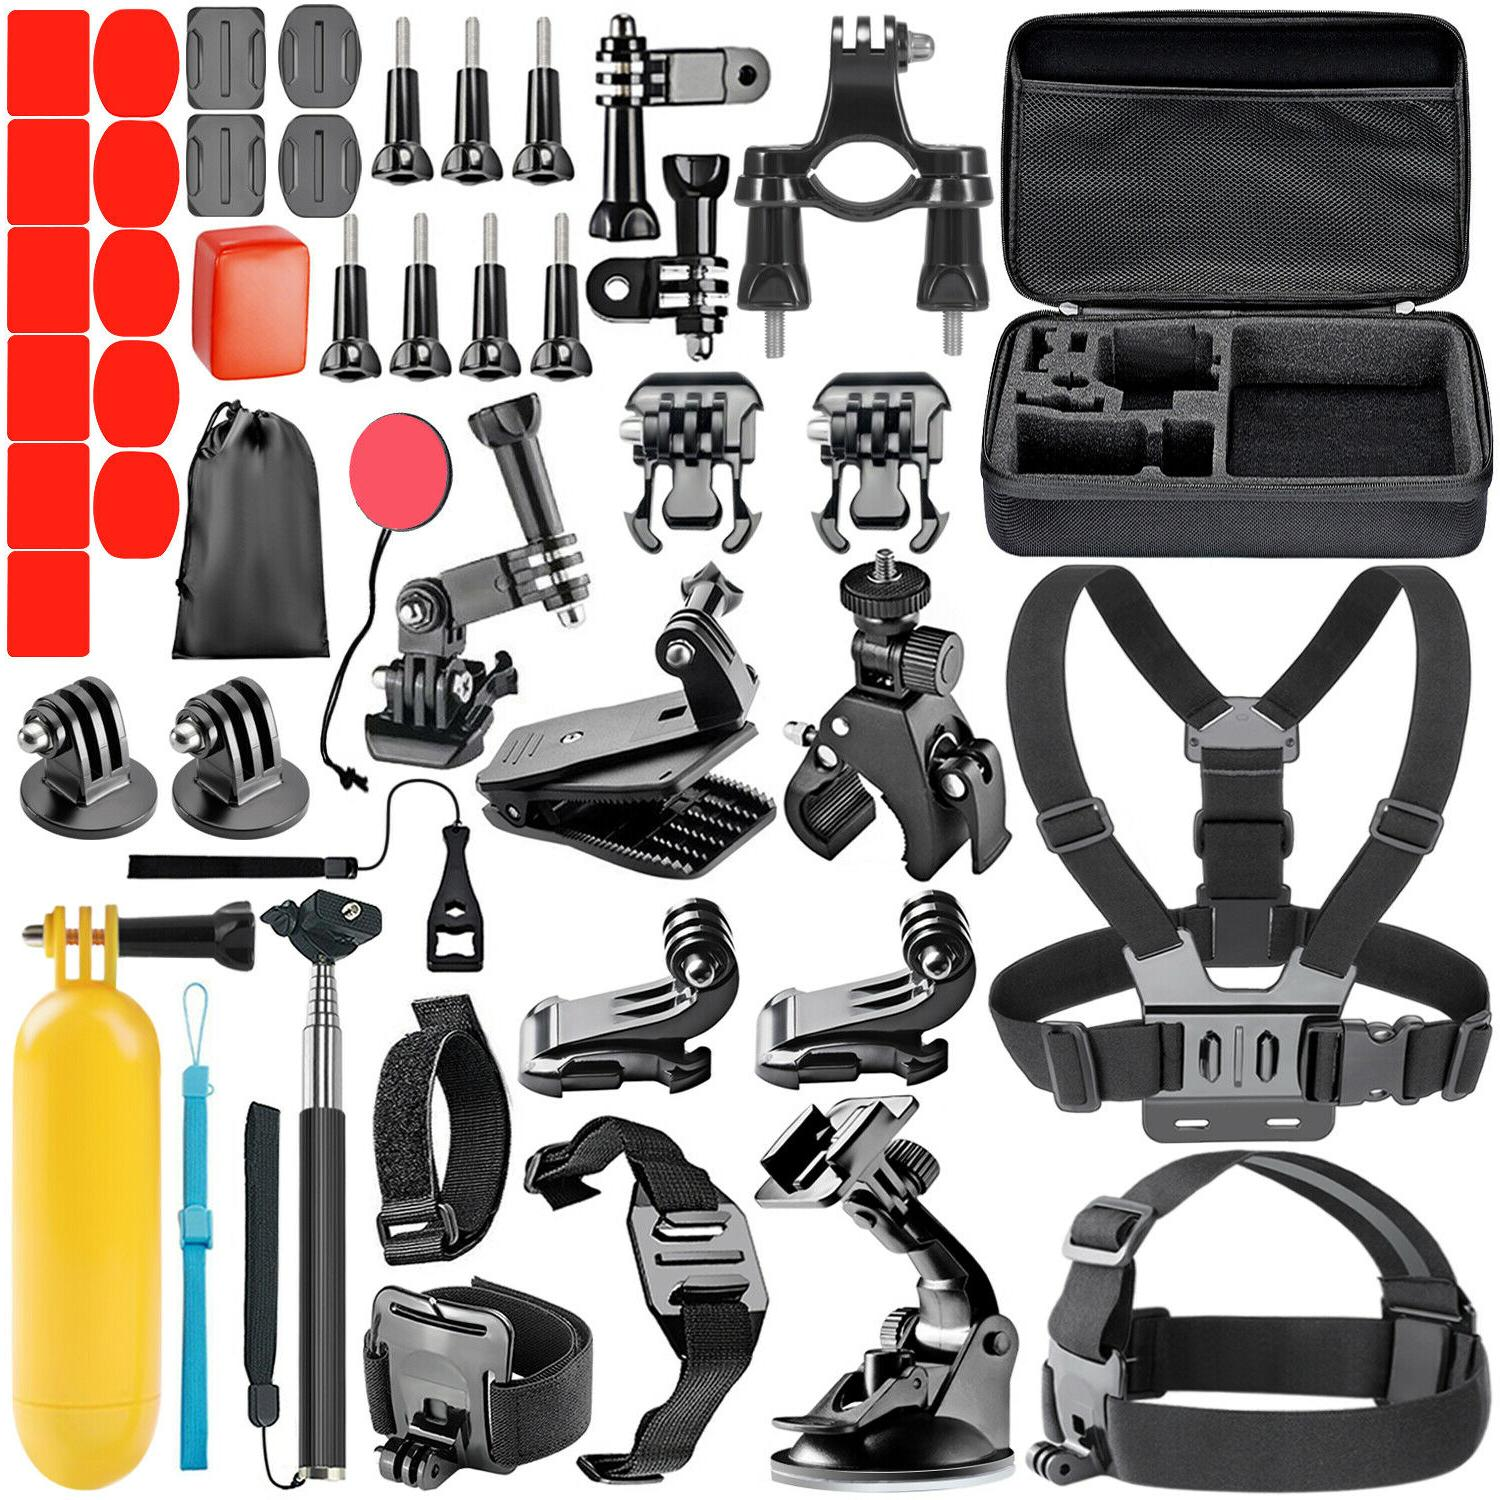 Neewer 44-In-1 Sport Accessory Kit for GoPro Hero4 Session H